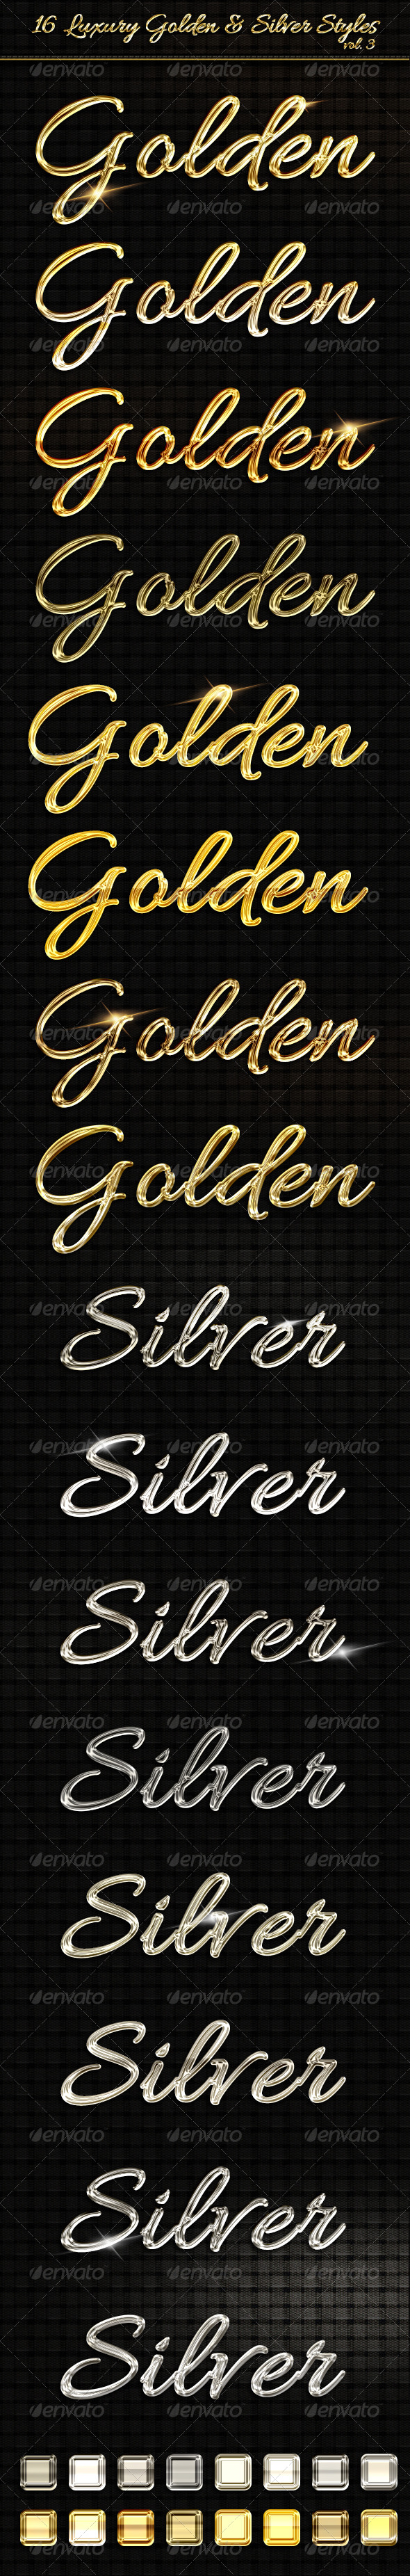 16 Luxury Golden & Silver Text Styles vol3 - Text Effects Styles